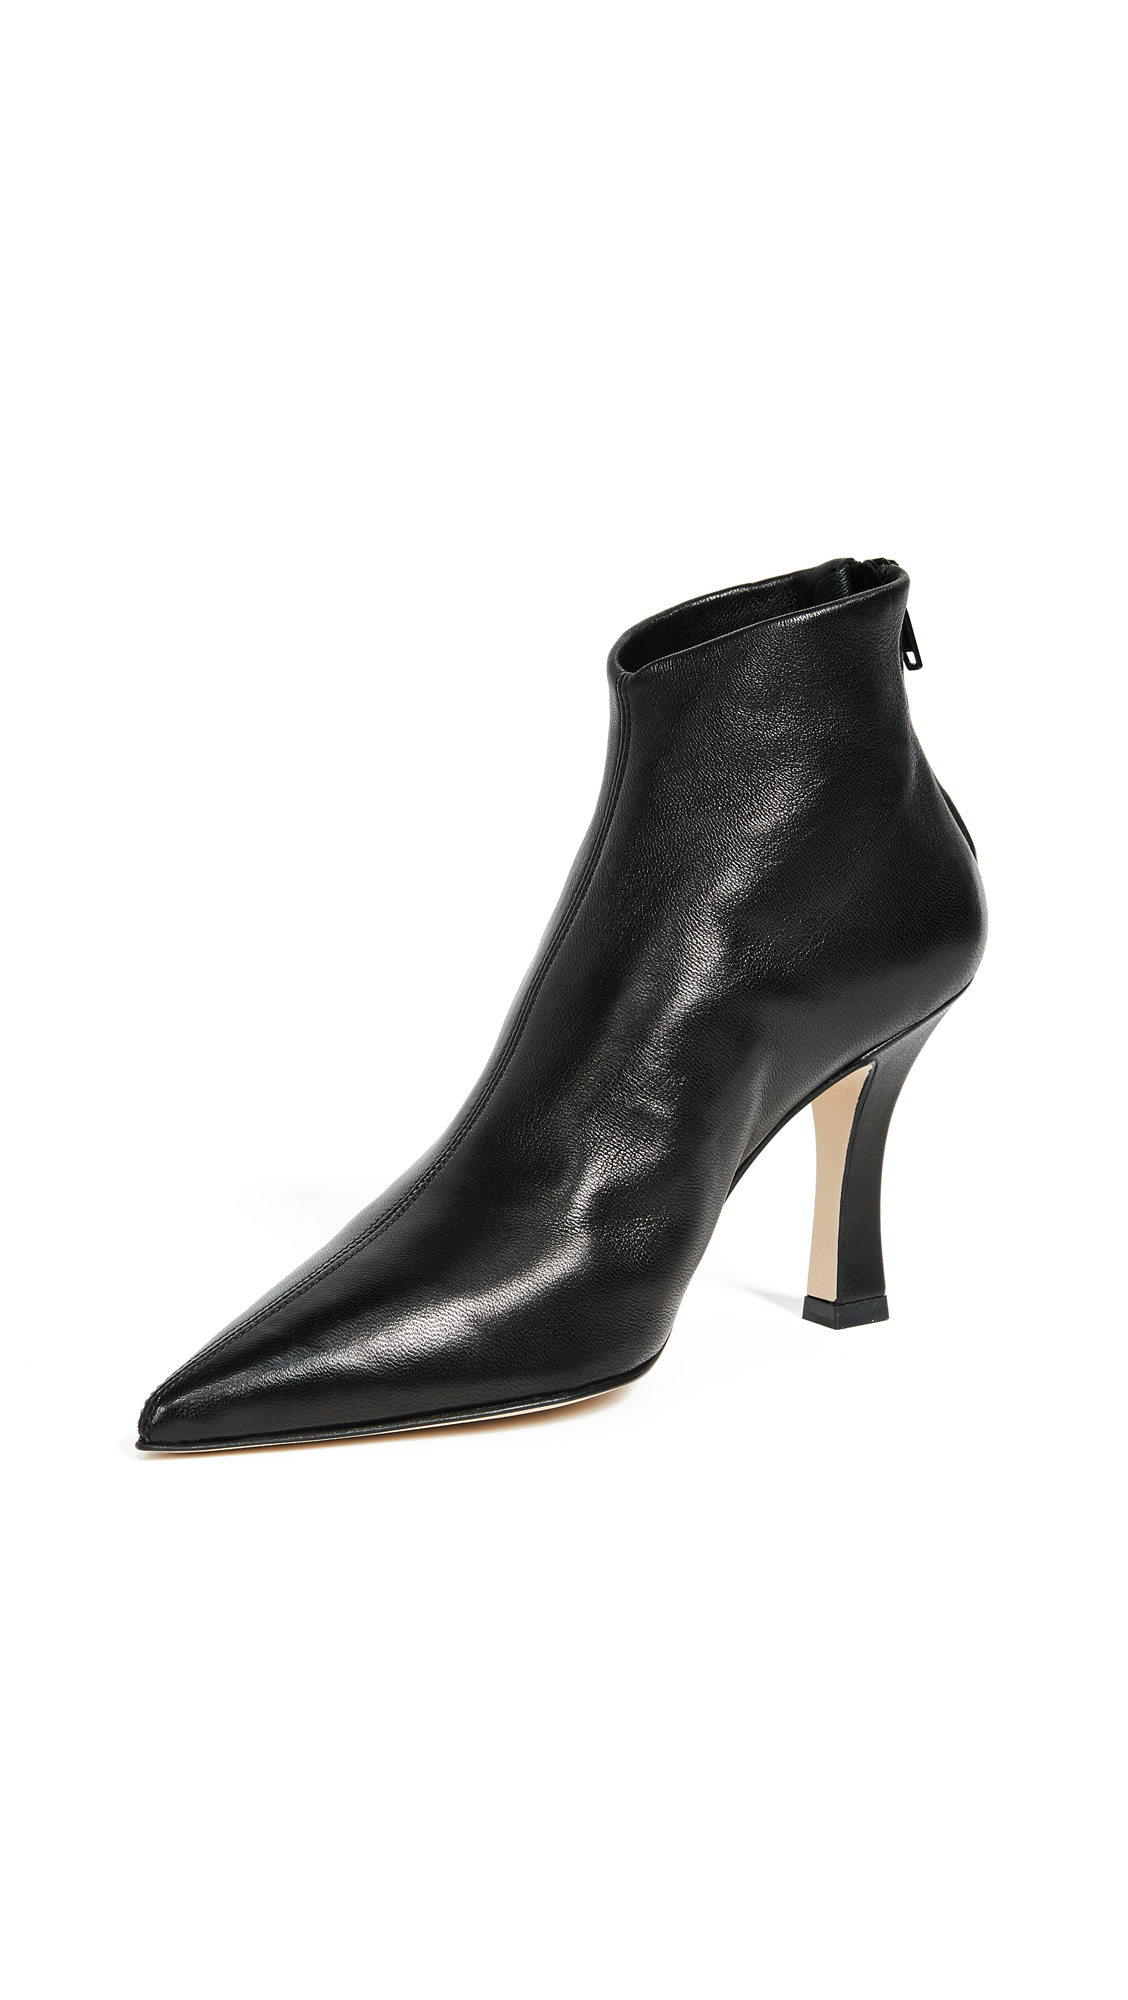 Helmut Lang Glove Booties - Black